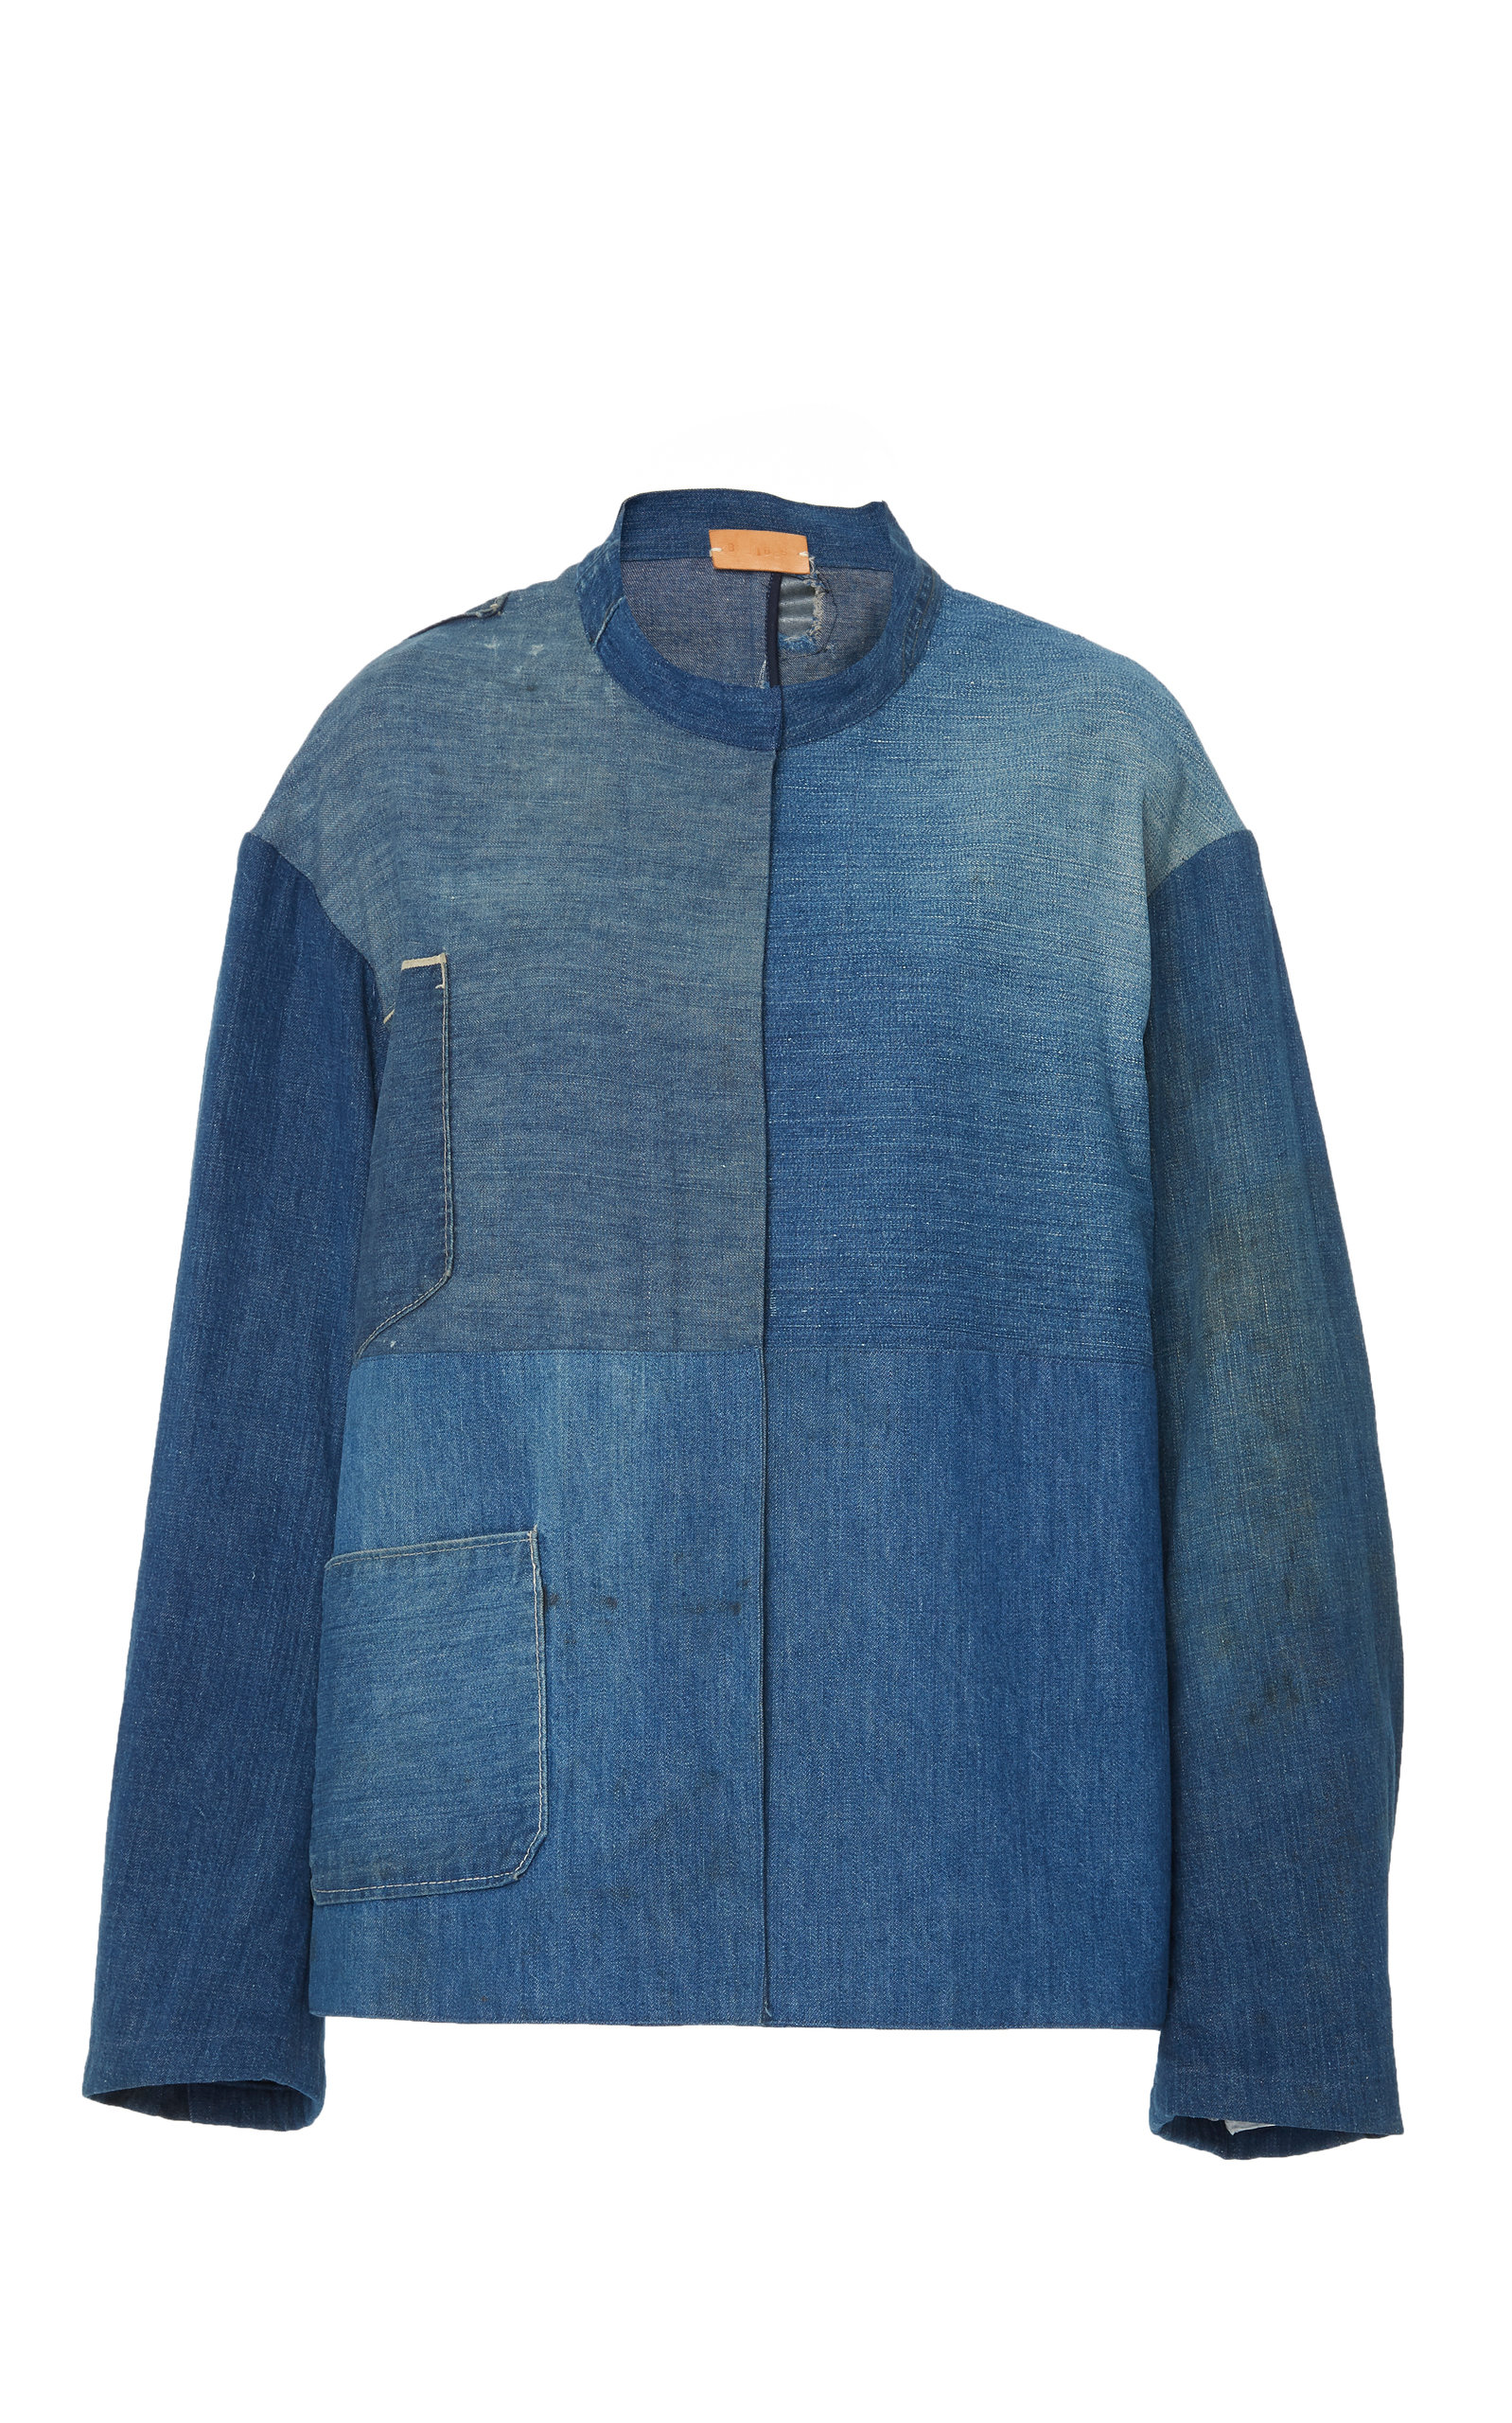 B SIDES Exclusive Patchwork Denim Apron Jacket in Blue